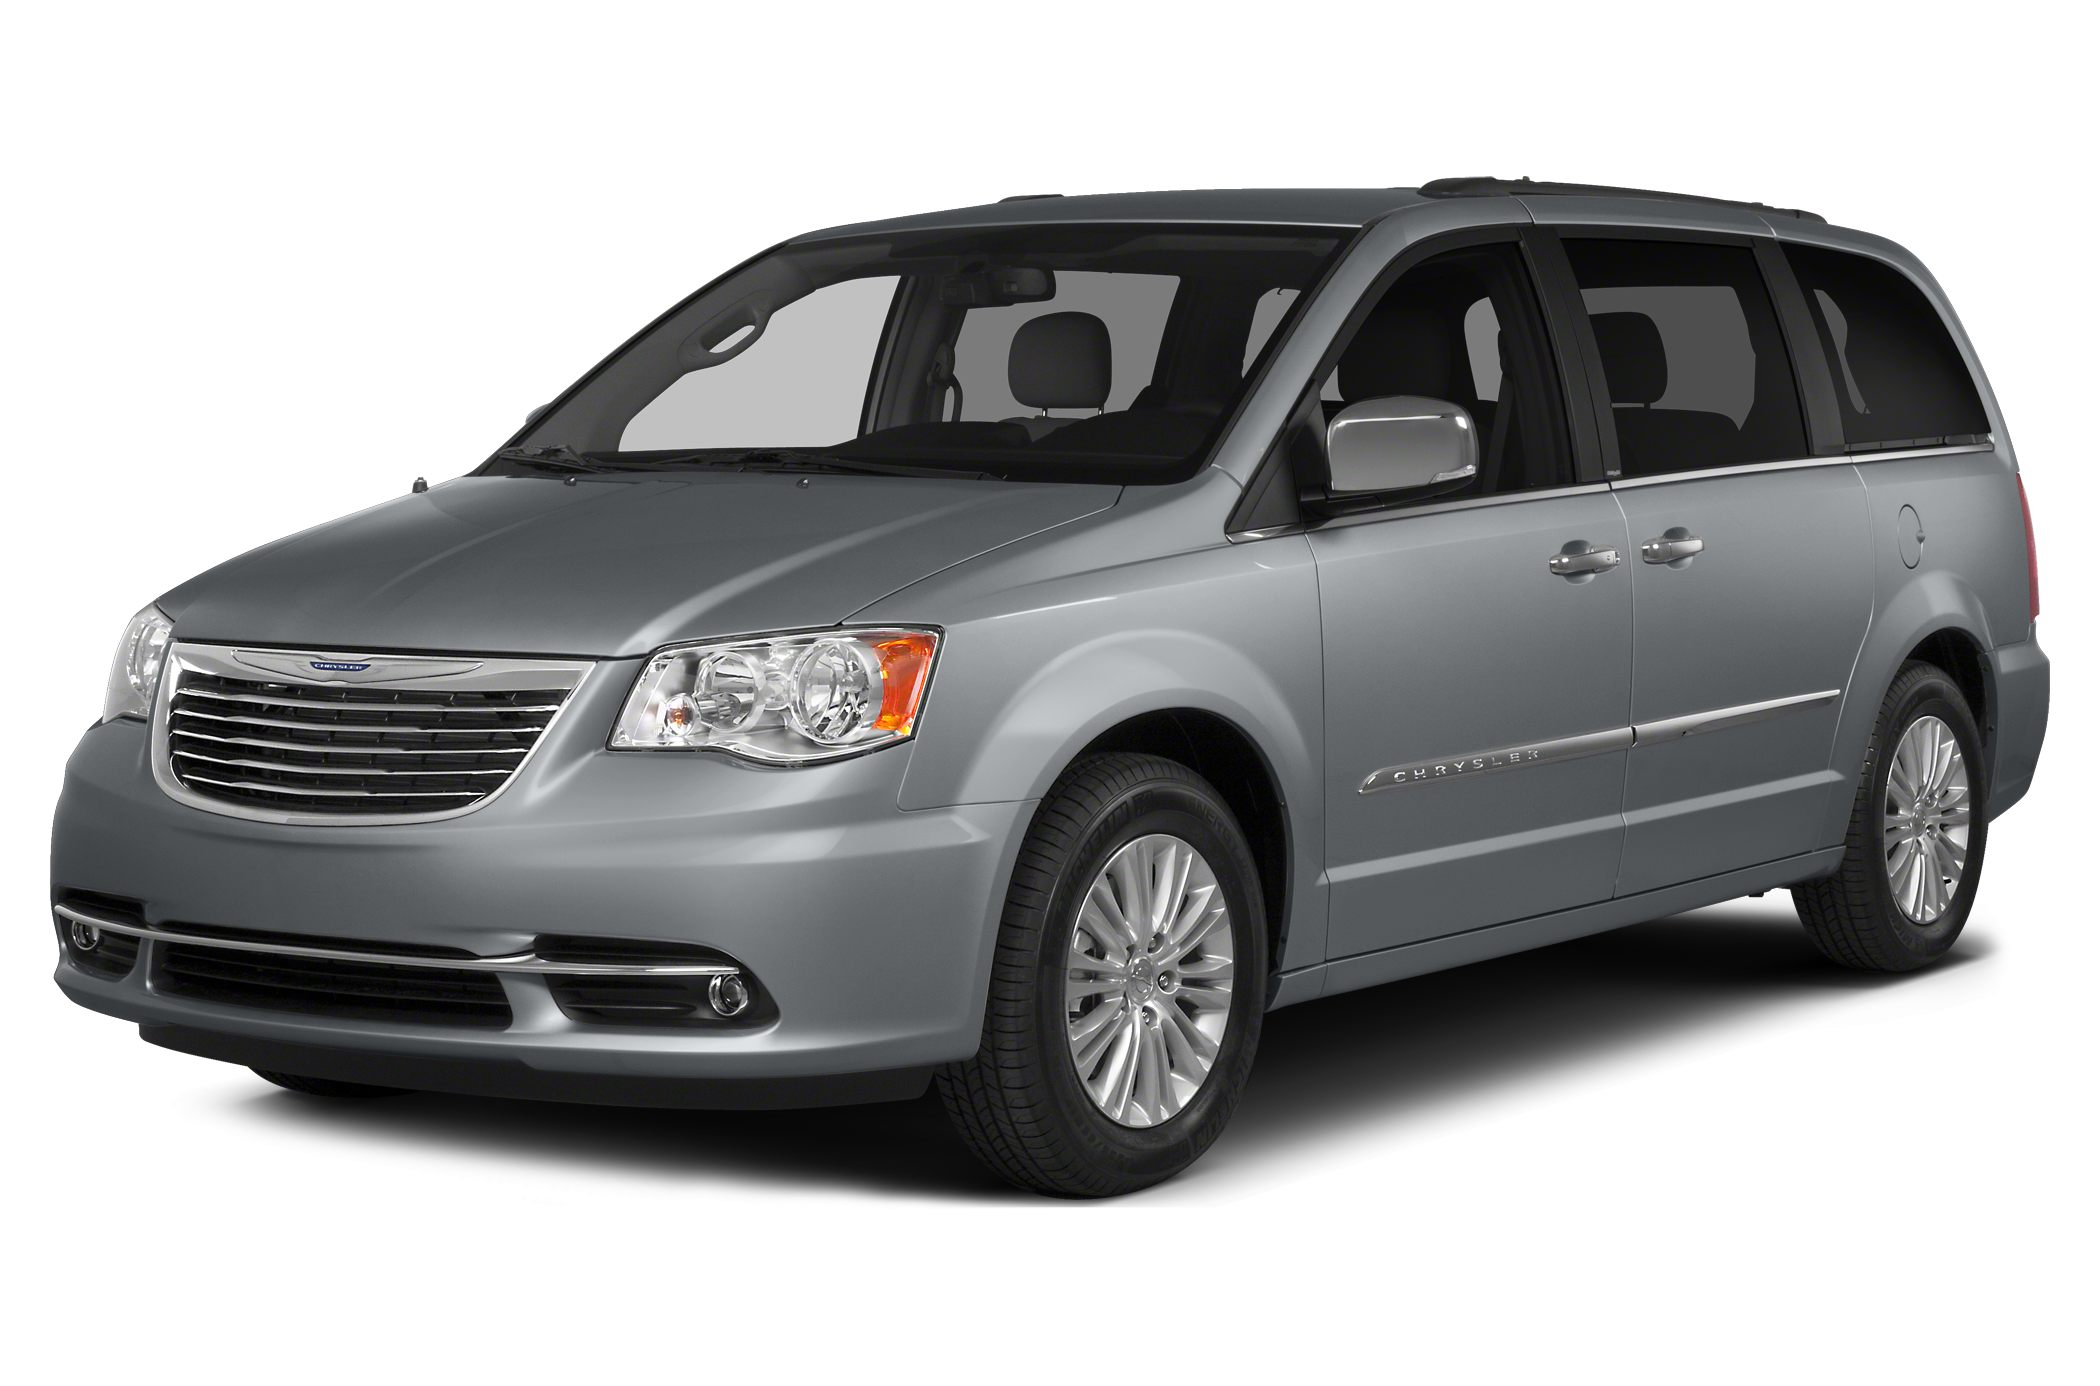 2014 Chrysler Town & Country Touring Minivan for sale in Dekalb for $20,974 with 31,291 miles.